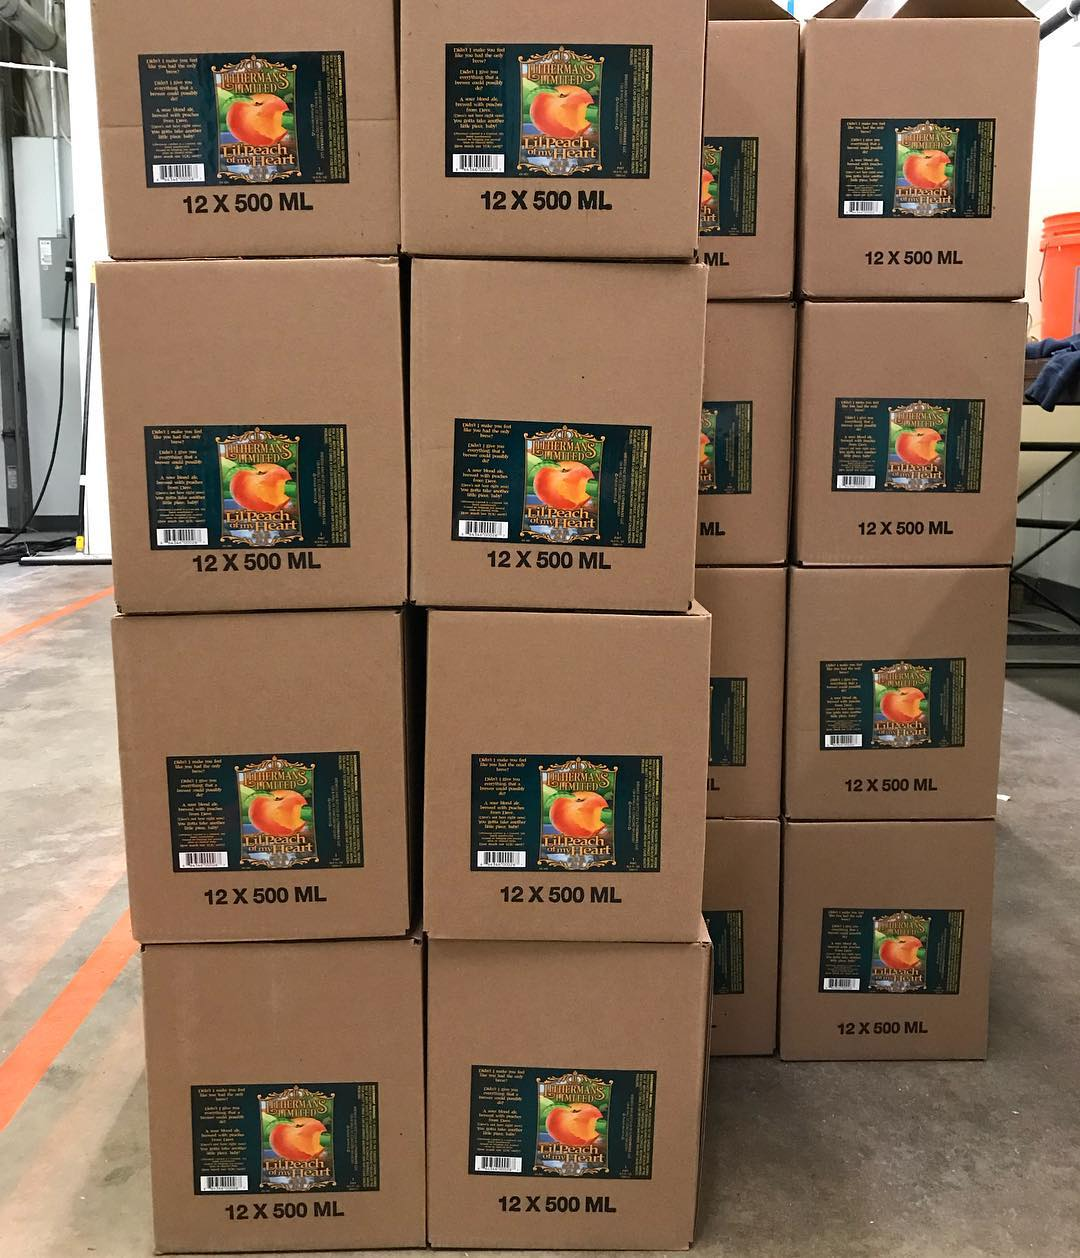 Lil' Peach of My Heart. Available on tap and in bottles just in time for Thanksgiving! On sale starting at noon on Wednesday in the tasting room. #lithermanslimited #concordnh #nhbeer #MHPlikes peaches.